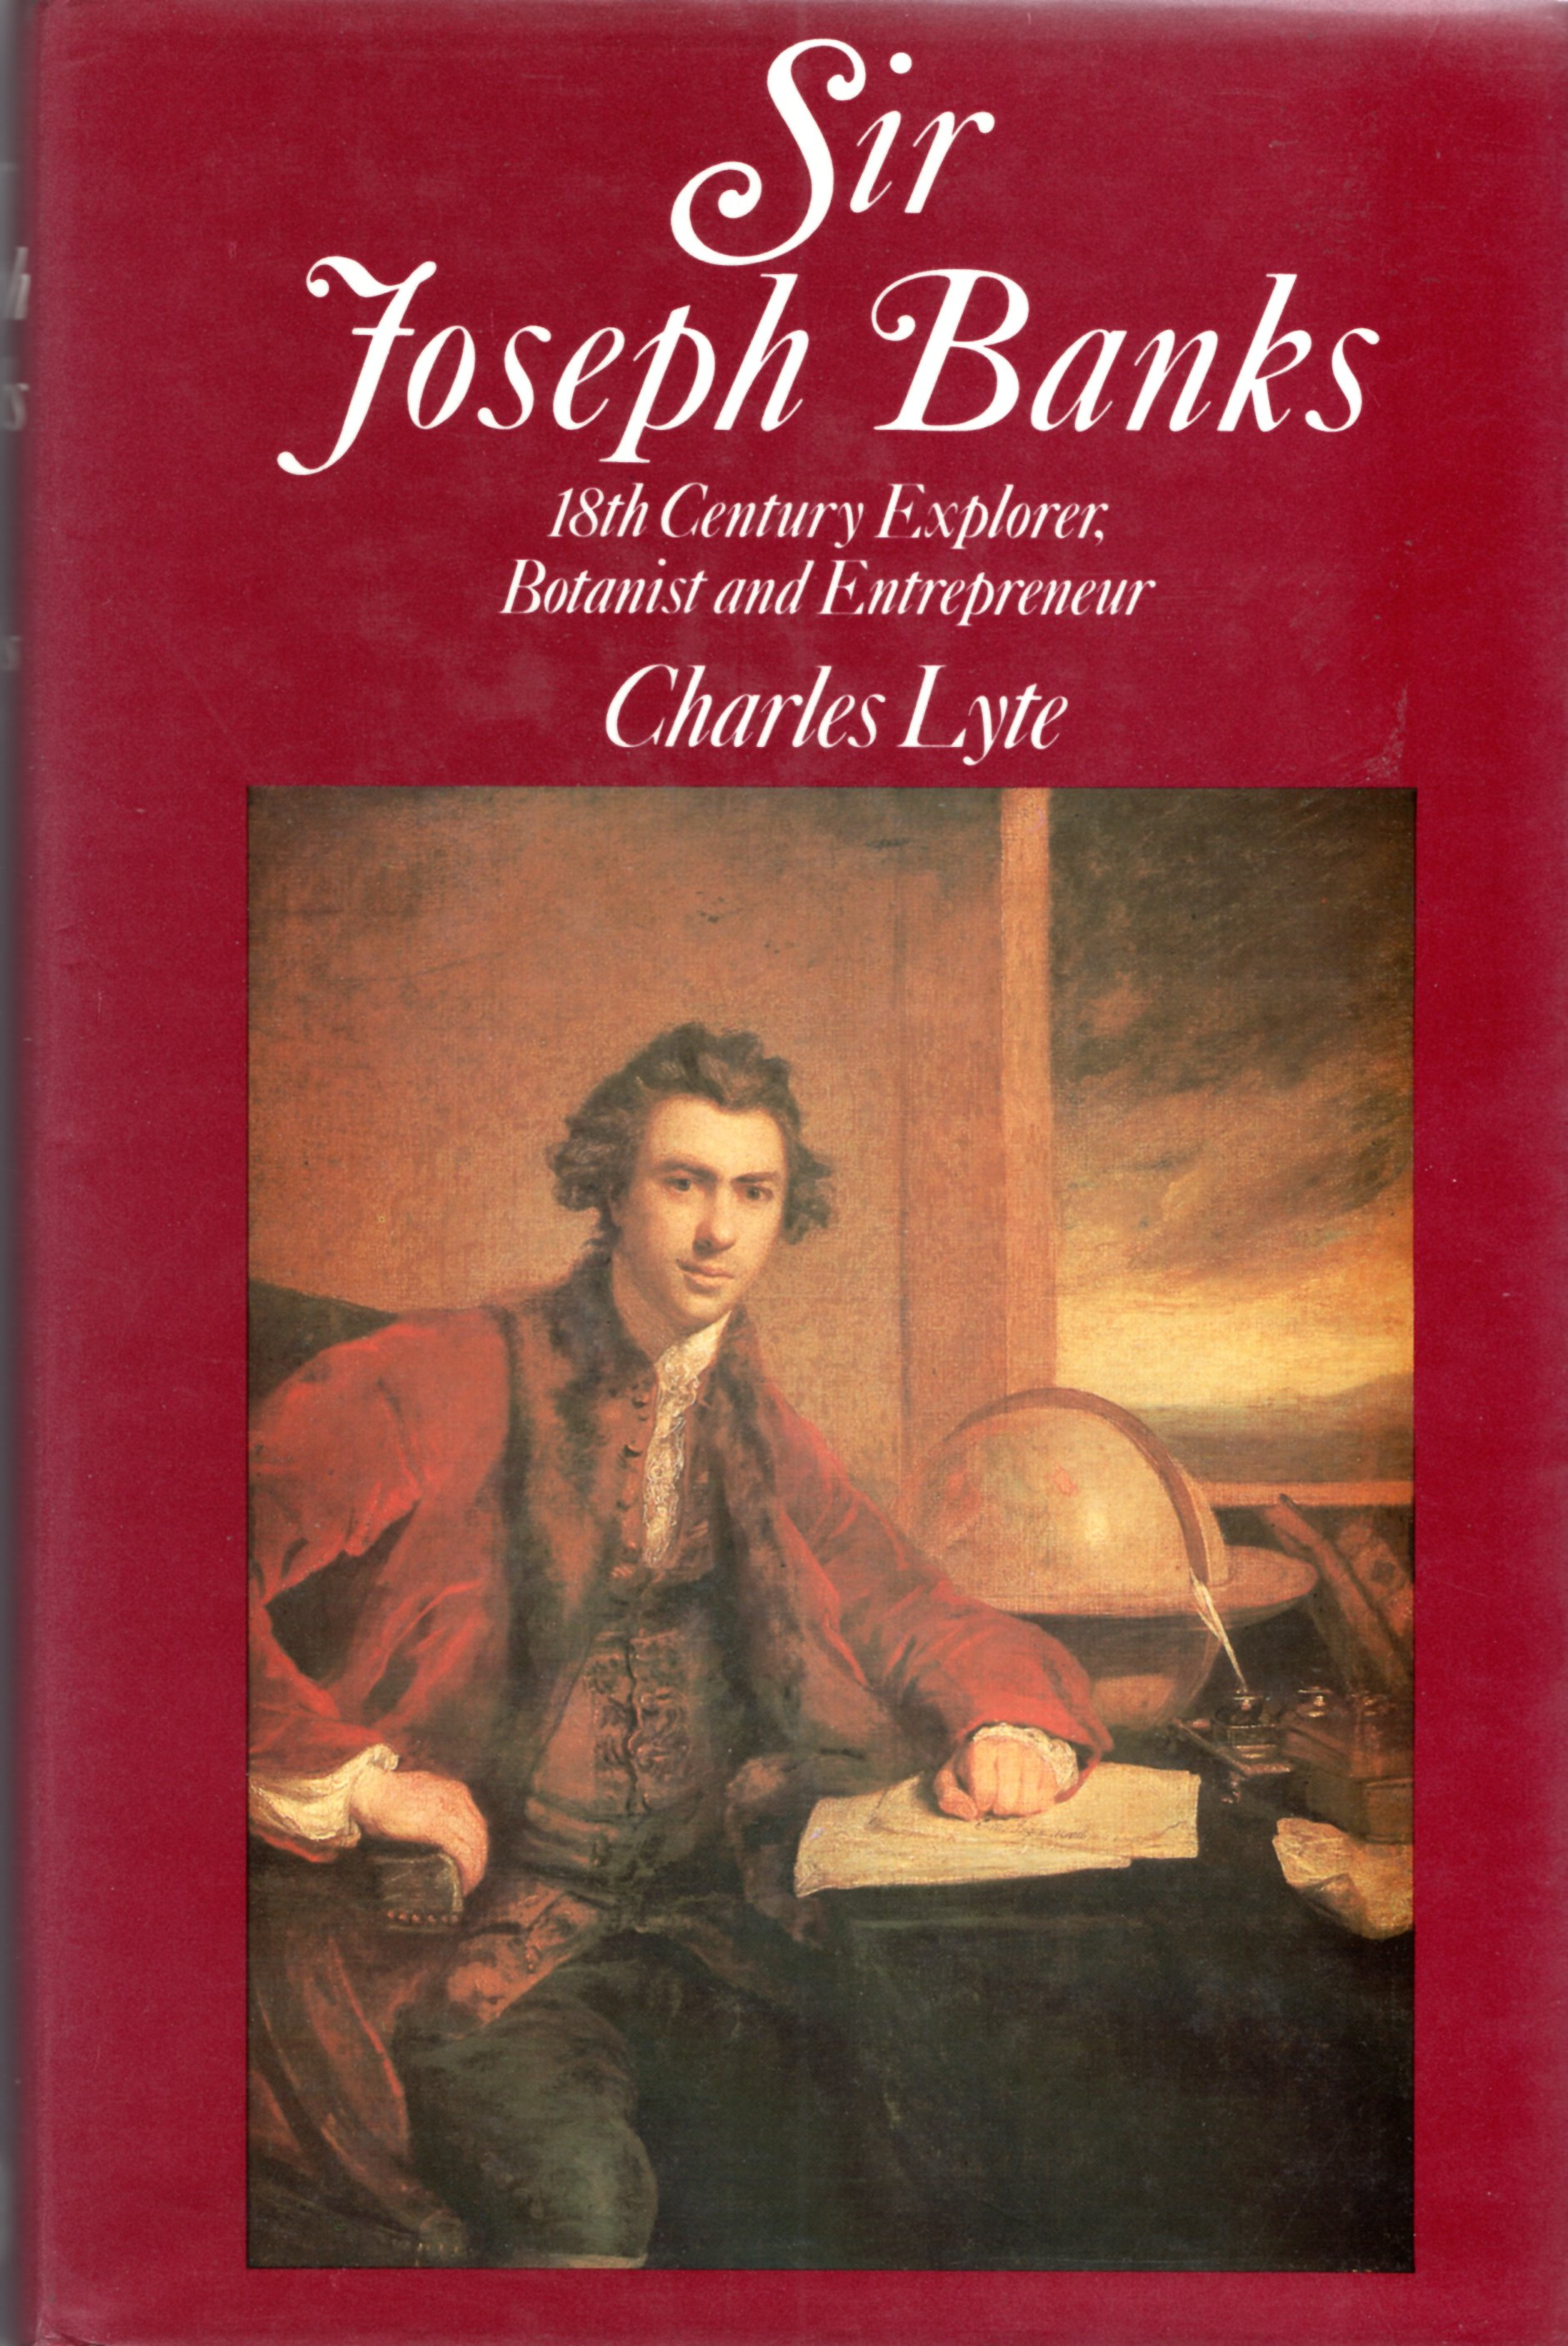 Image for Sir Joseph Banks. 18th Century Explorer, Botanist & Entrepreneur